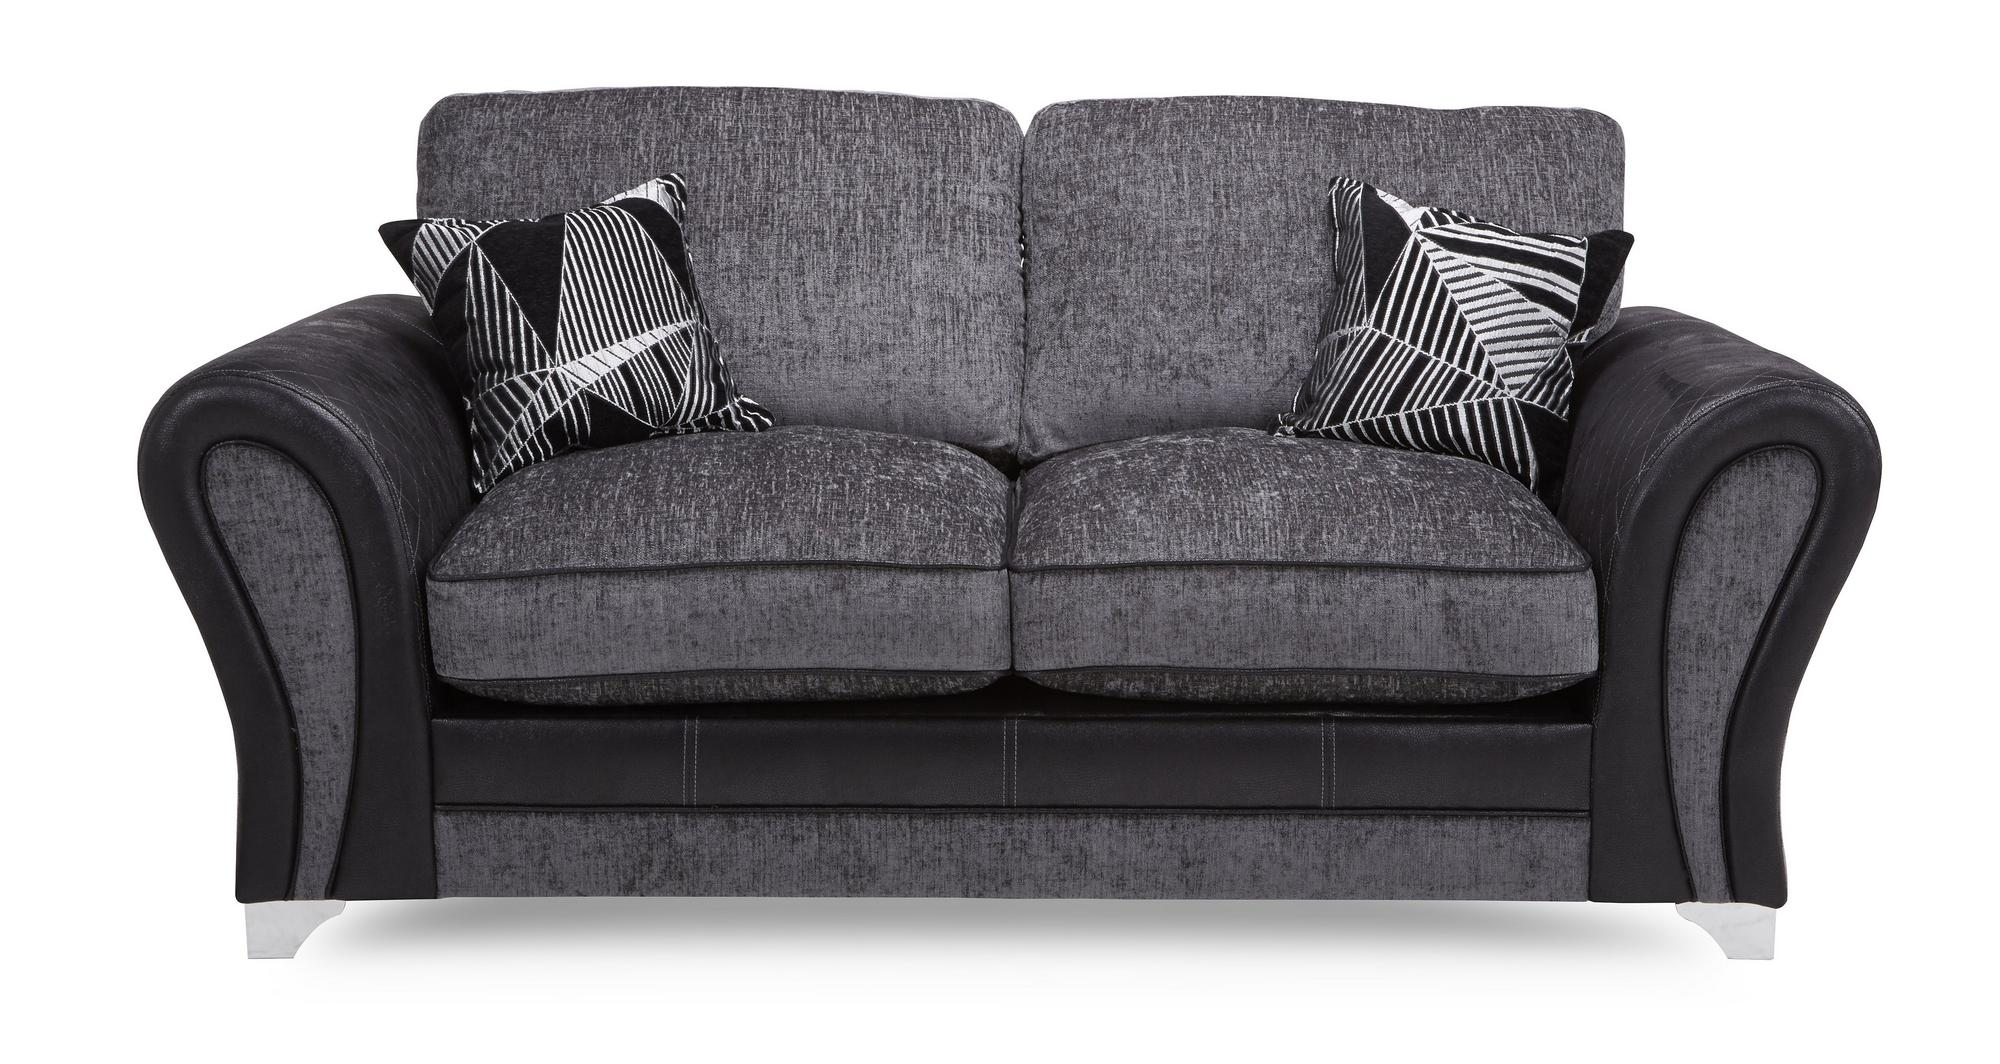 Dfs Starlet Charcoal Grey Fabric Large 2 Seater Formal